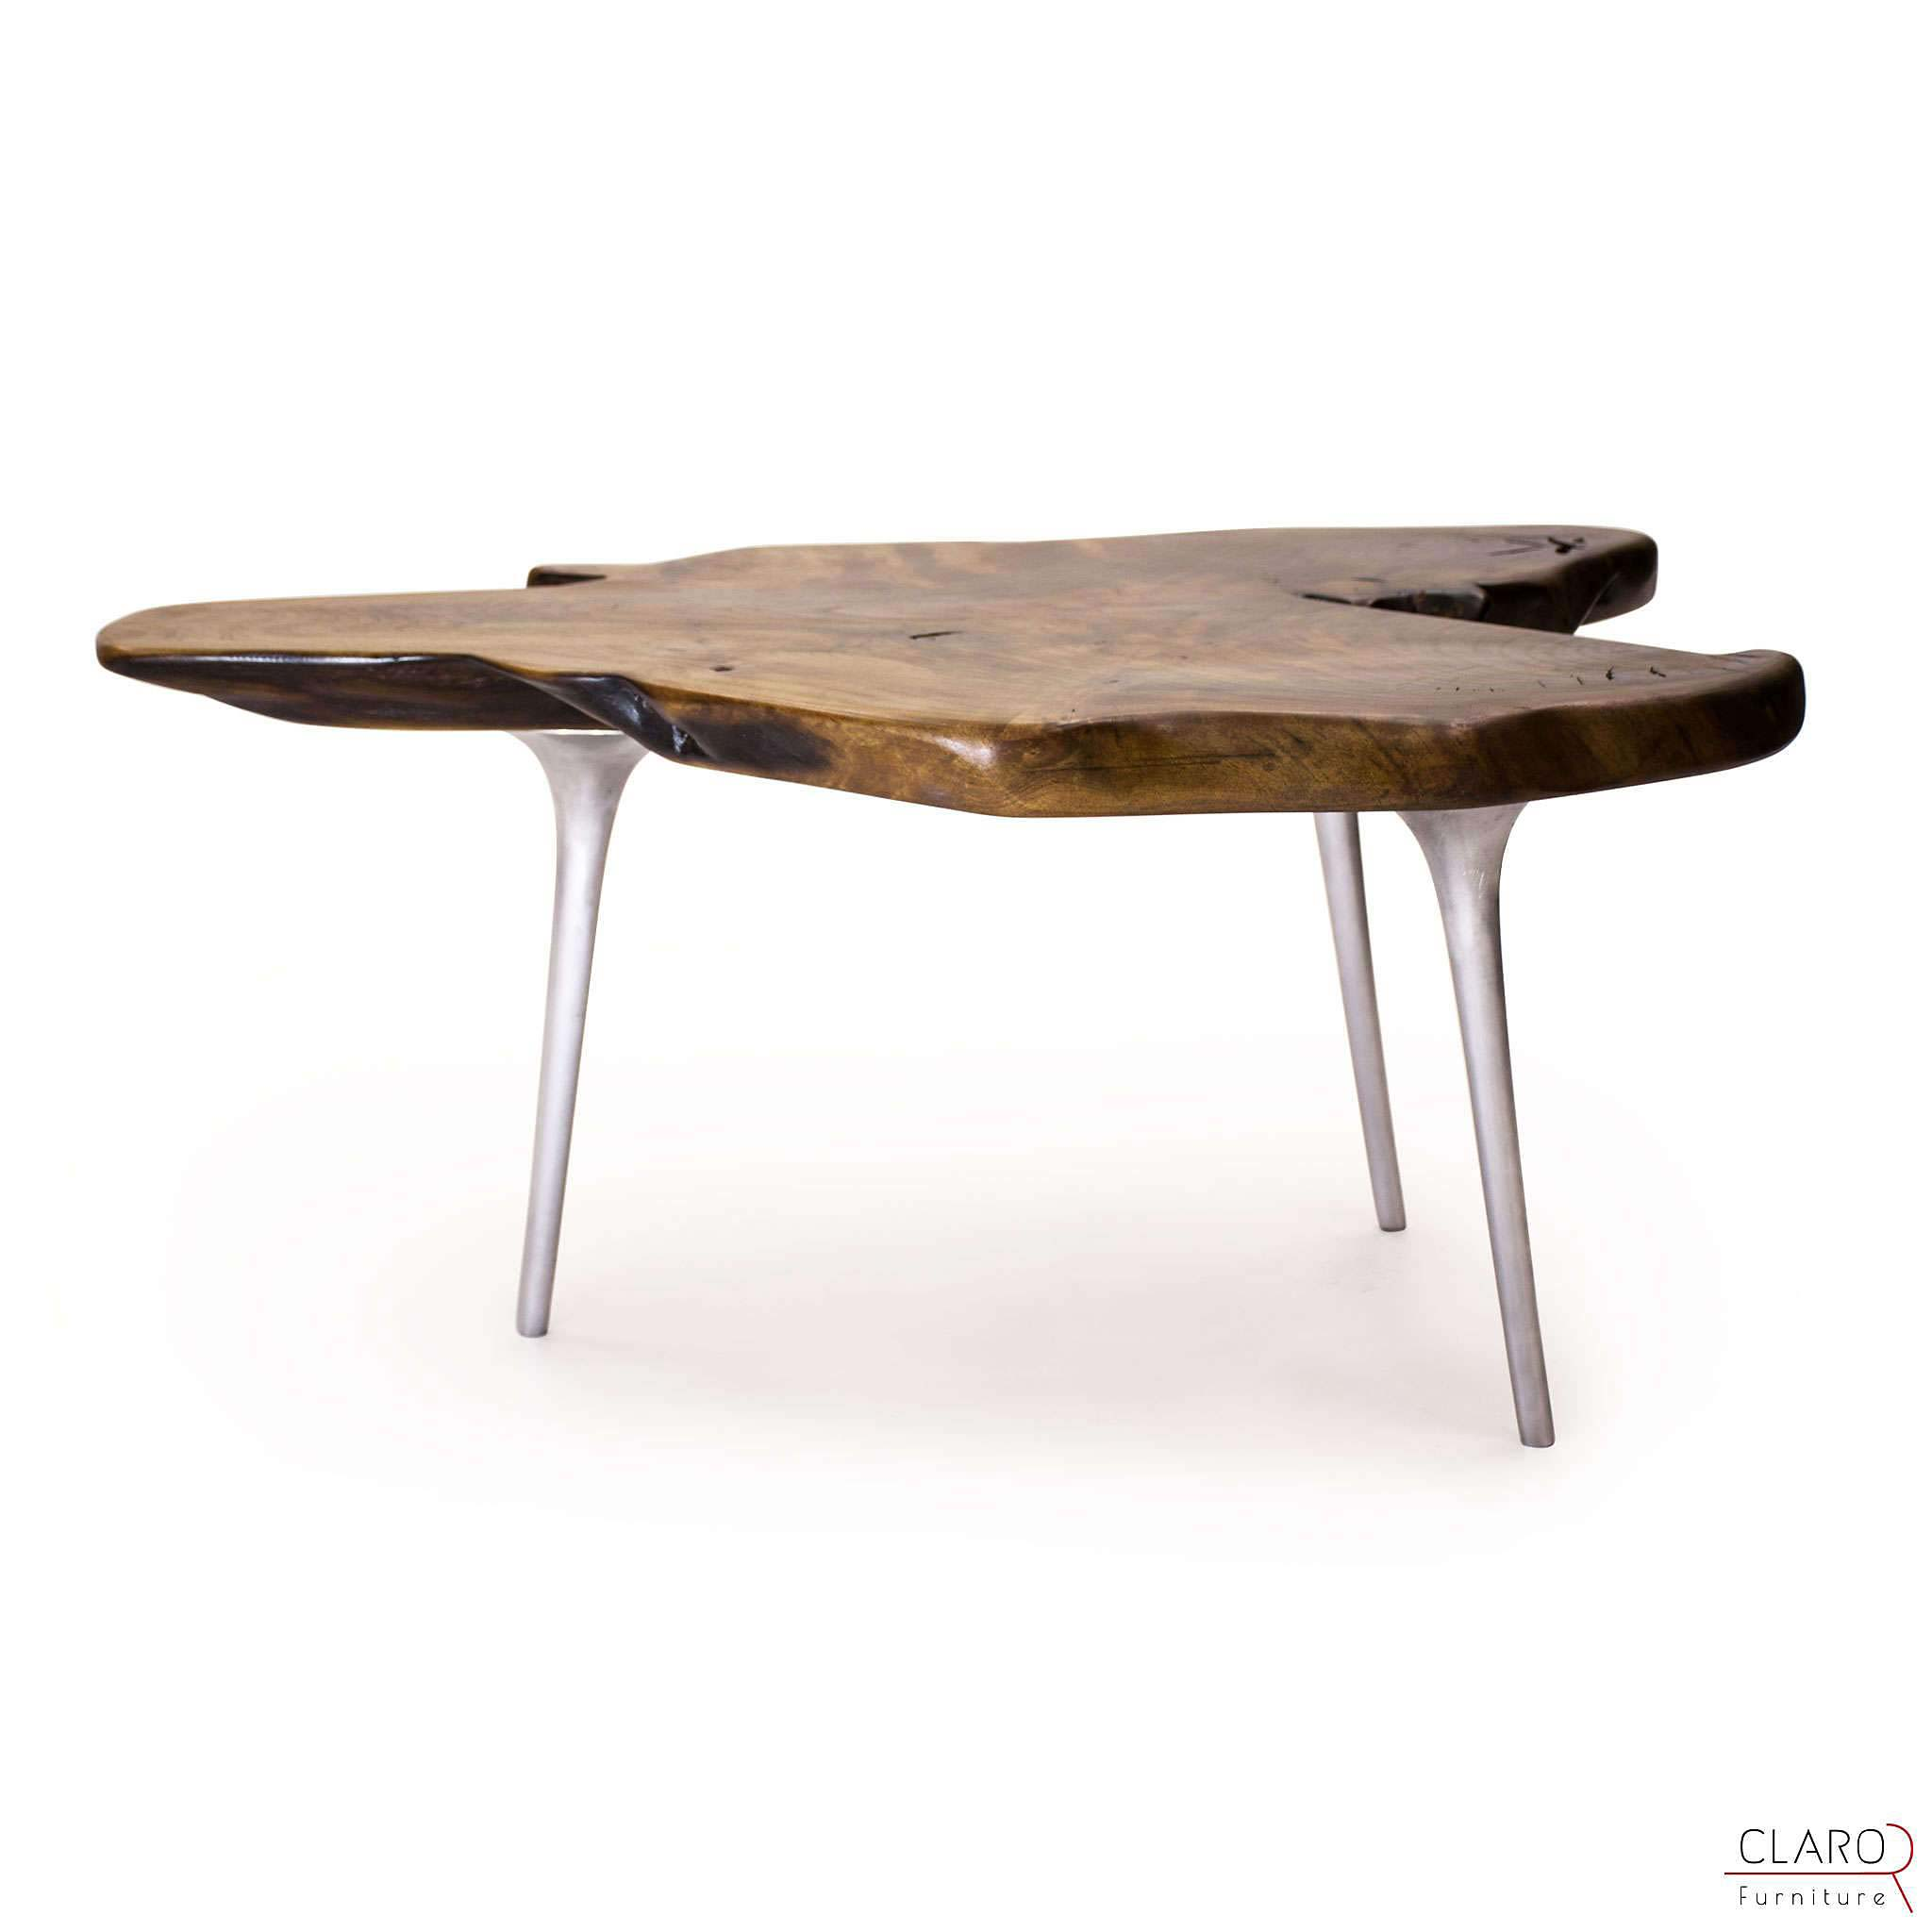 Slab Coffee Table: Wooden Tables